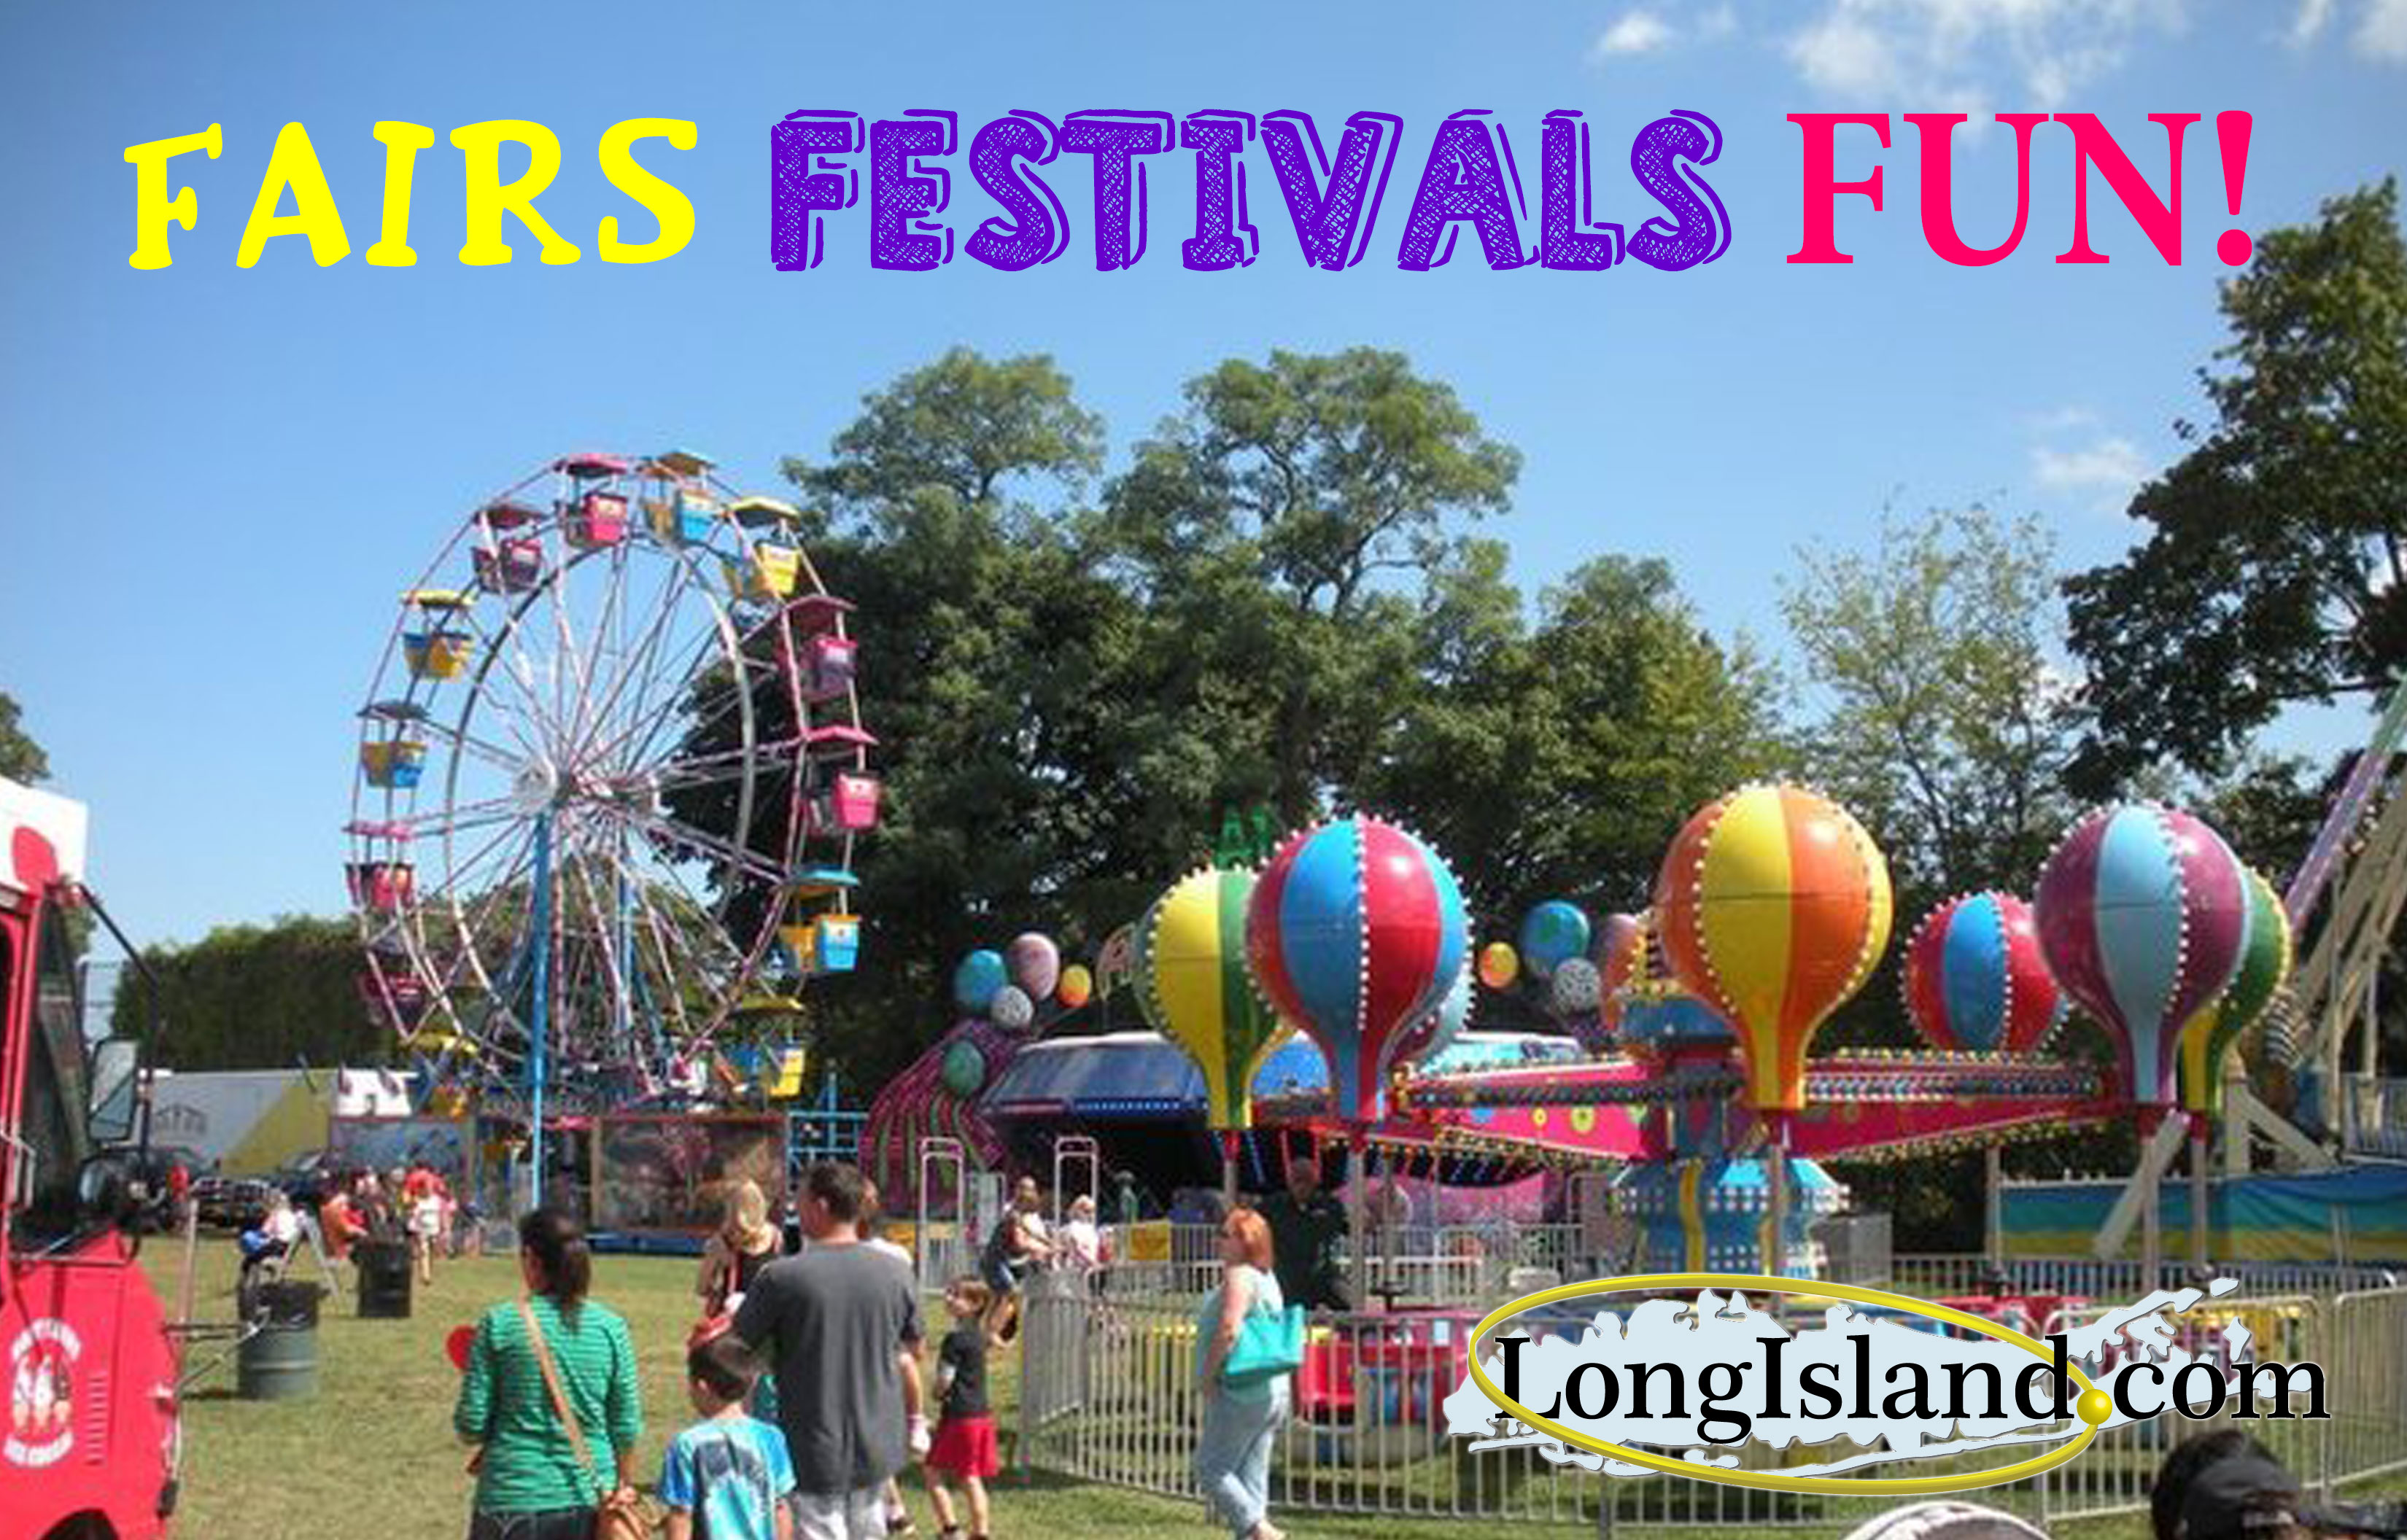 Long island fall festivals and fairs 2017 autos post for Craft fairs long island